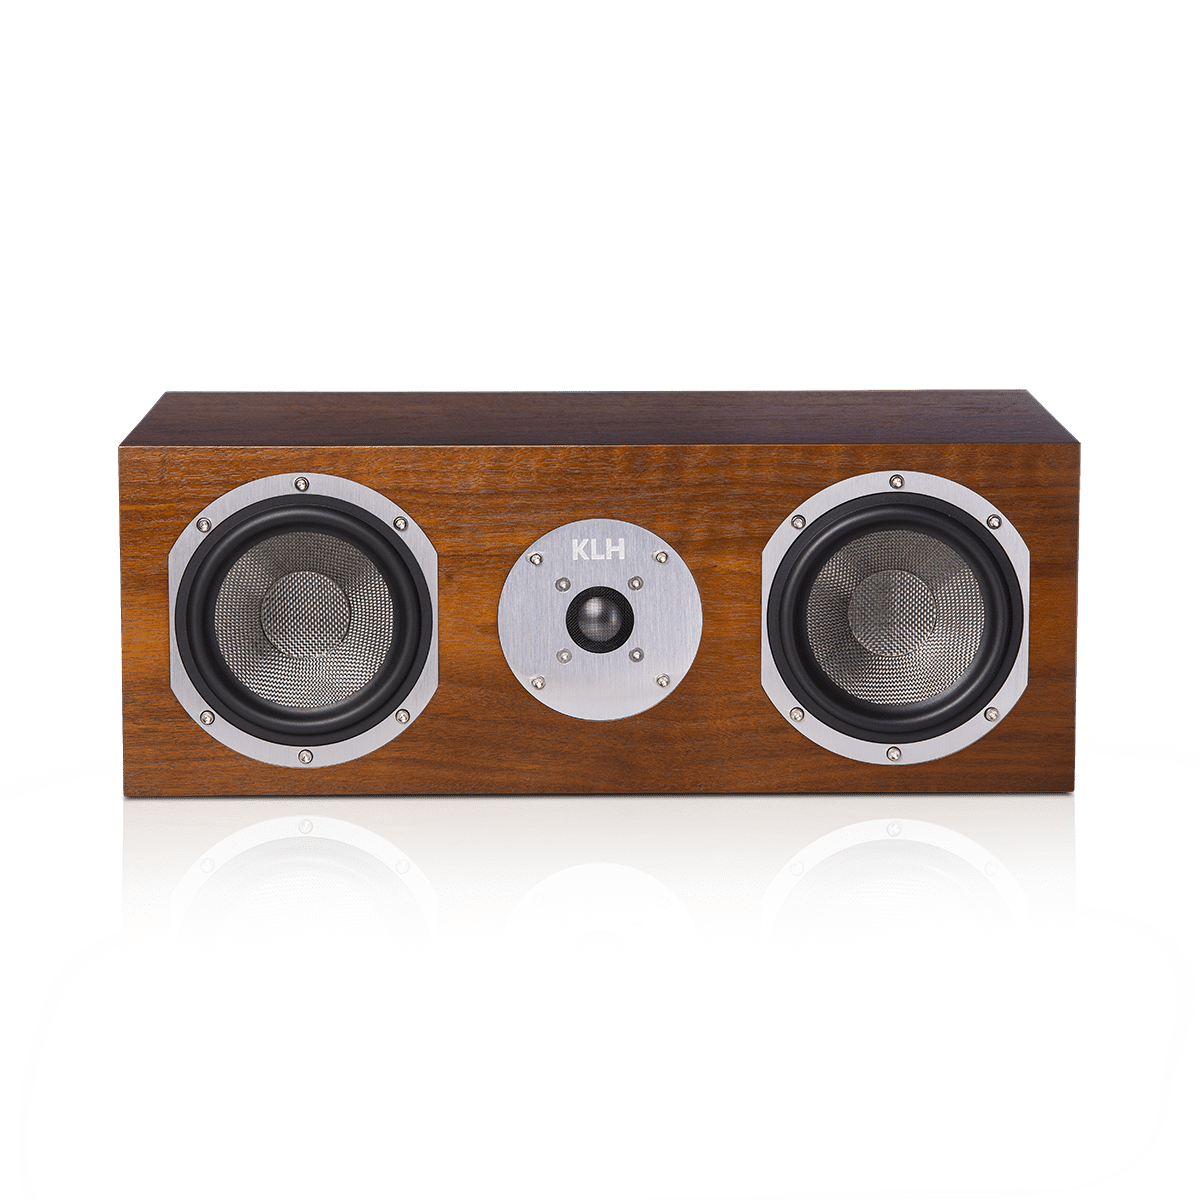 Story center Speakers